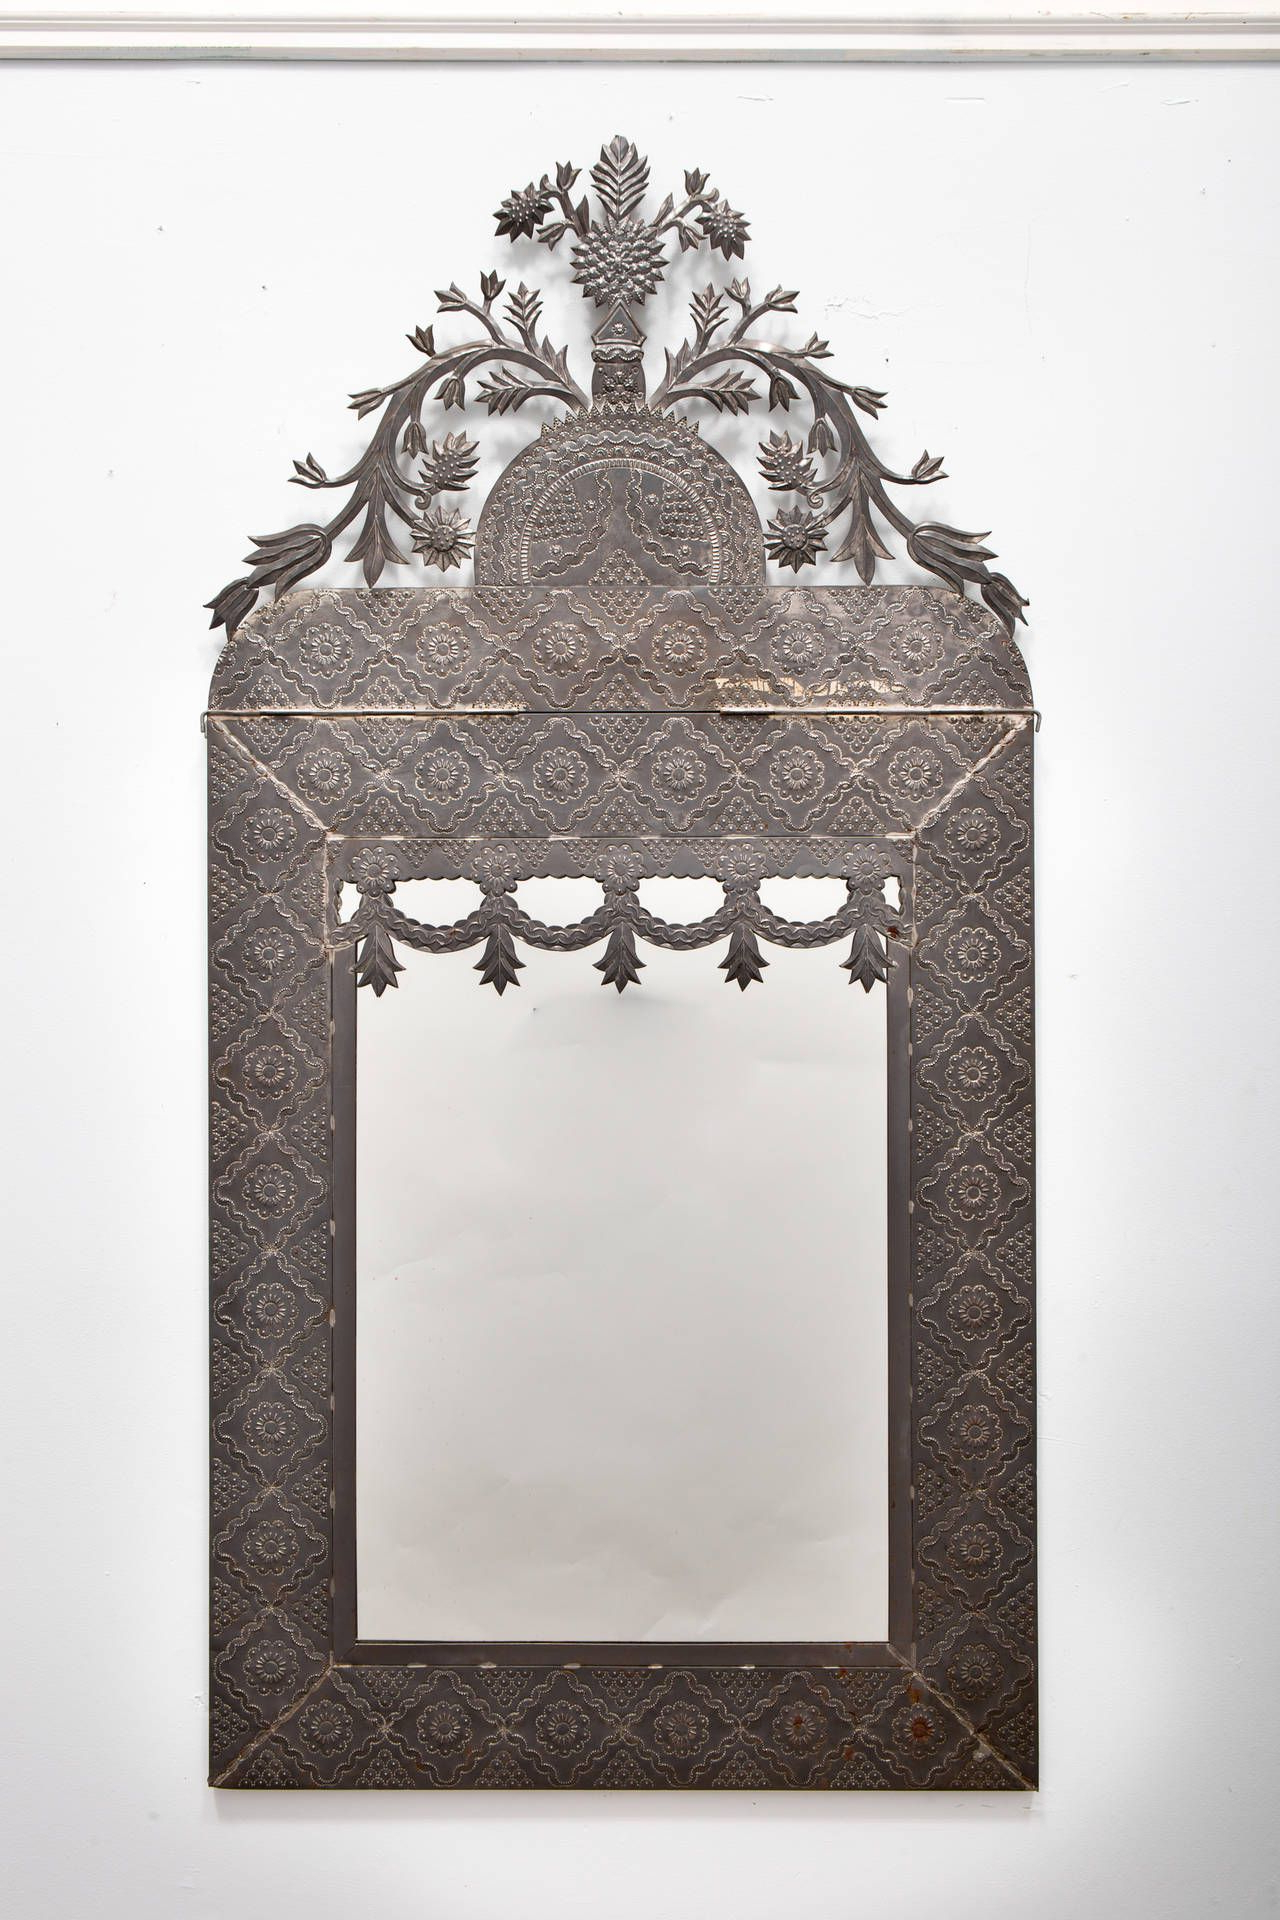 Decor, Furniture, Accessories Regarding Most Popular Mexican Wall Mirrors (View 3 of 20)